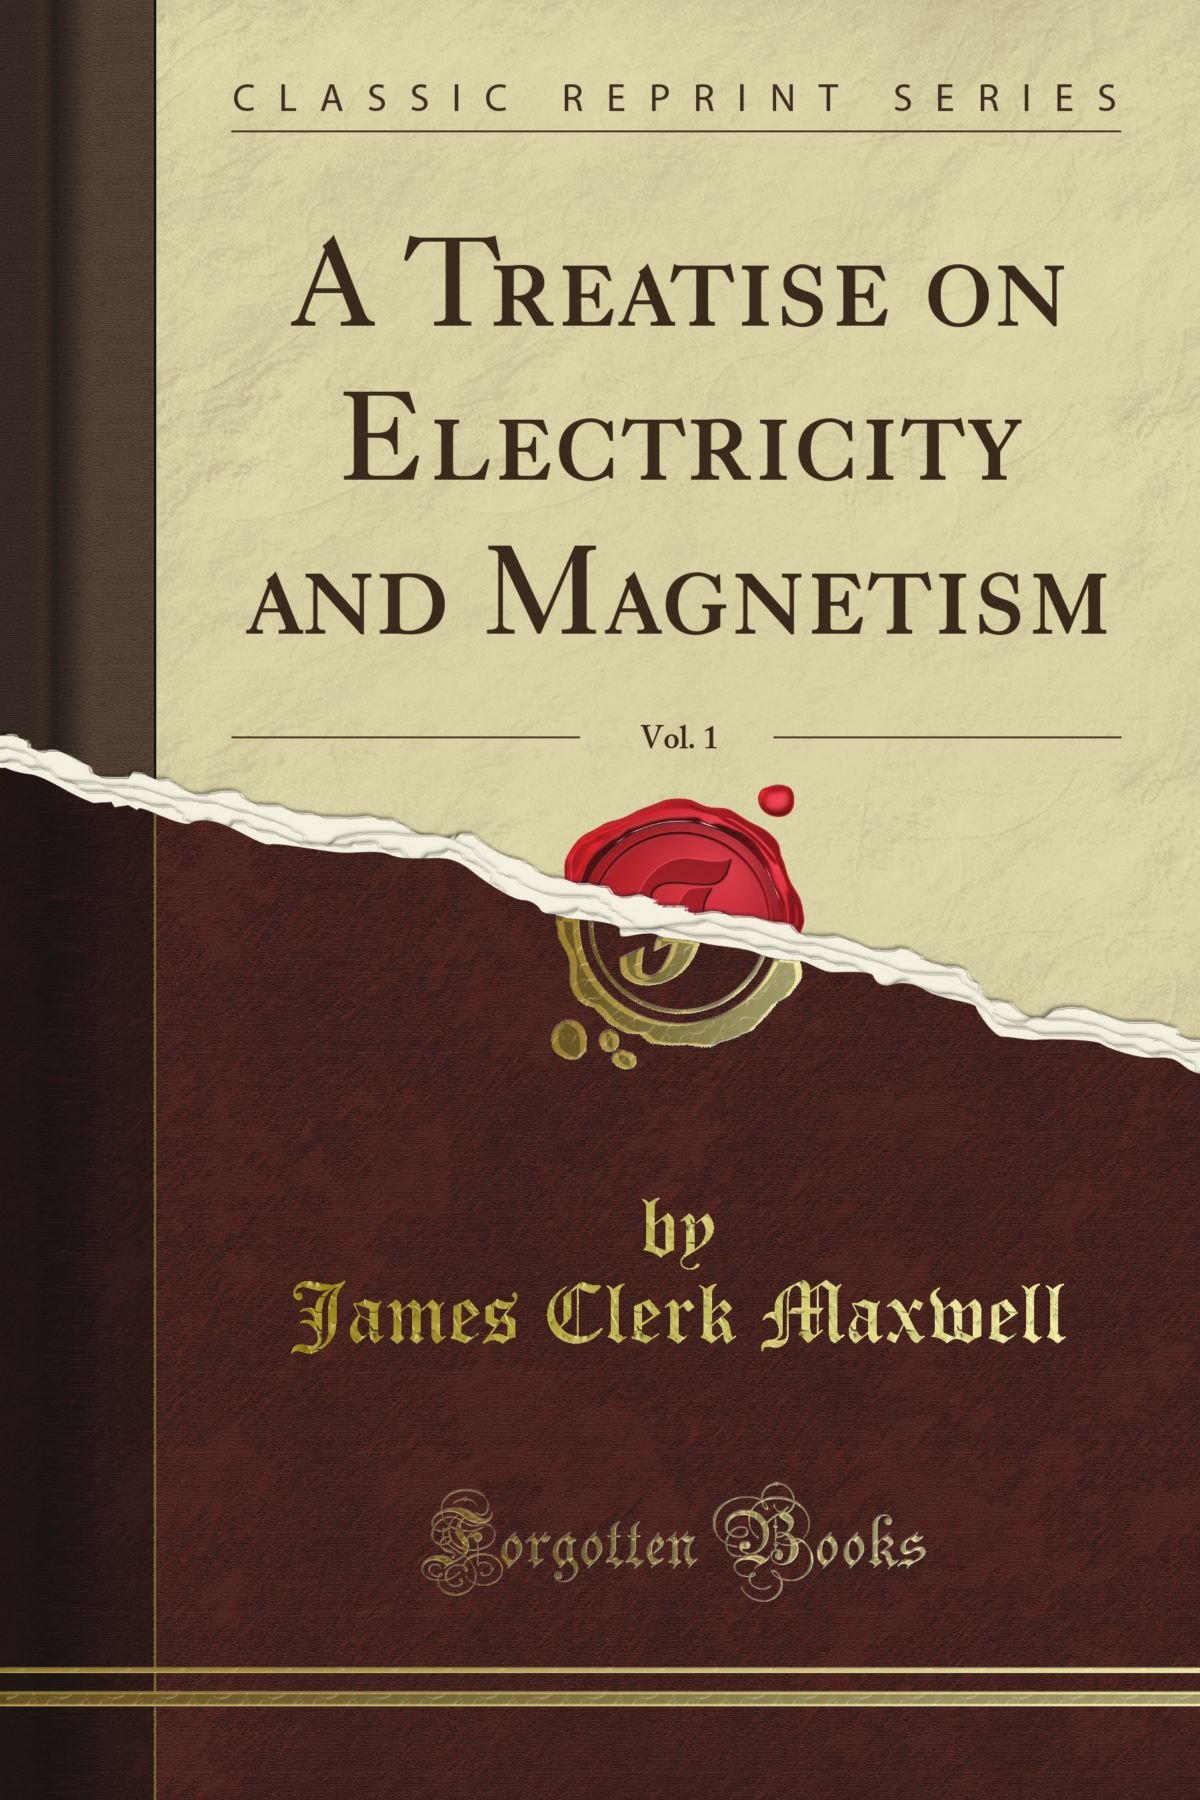 A Treatise on Electricity and Magnetism, Vol. 1 (Classic Reprint) PDF